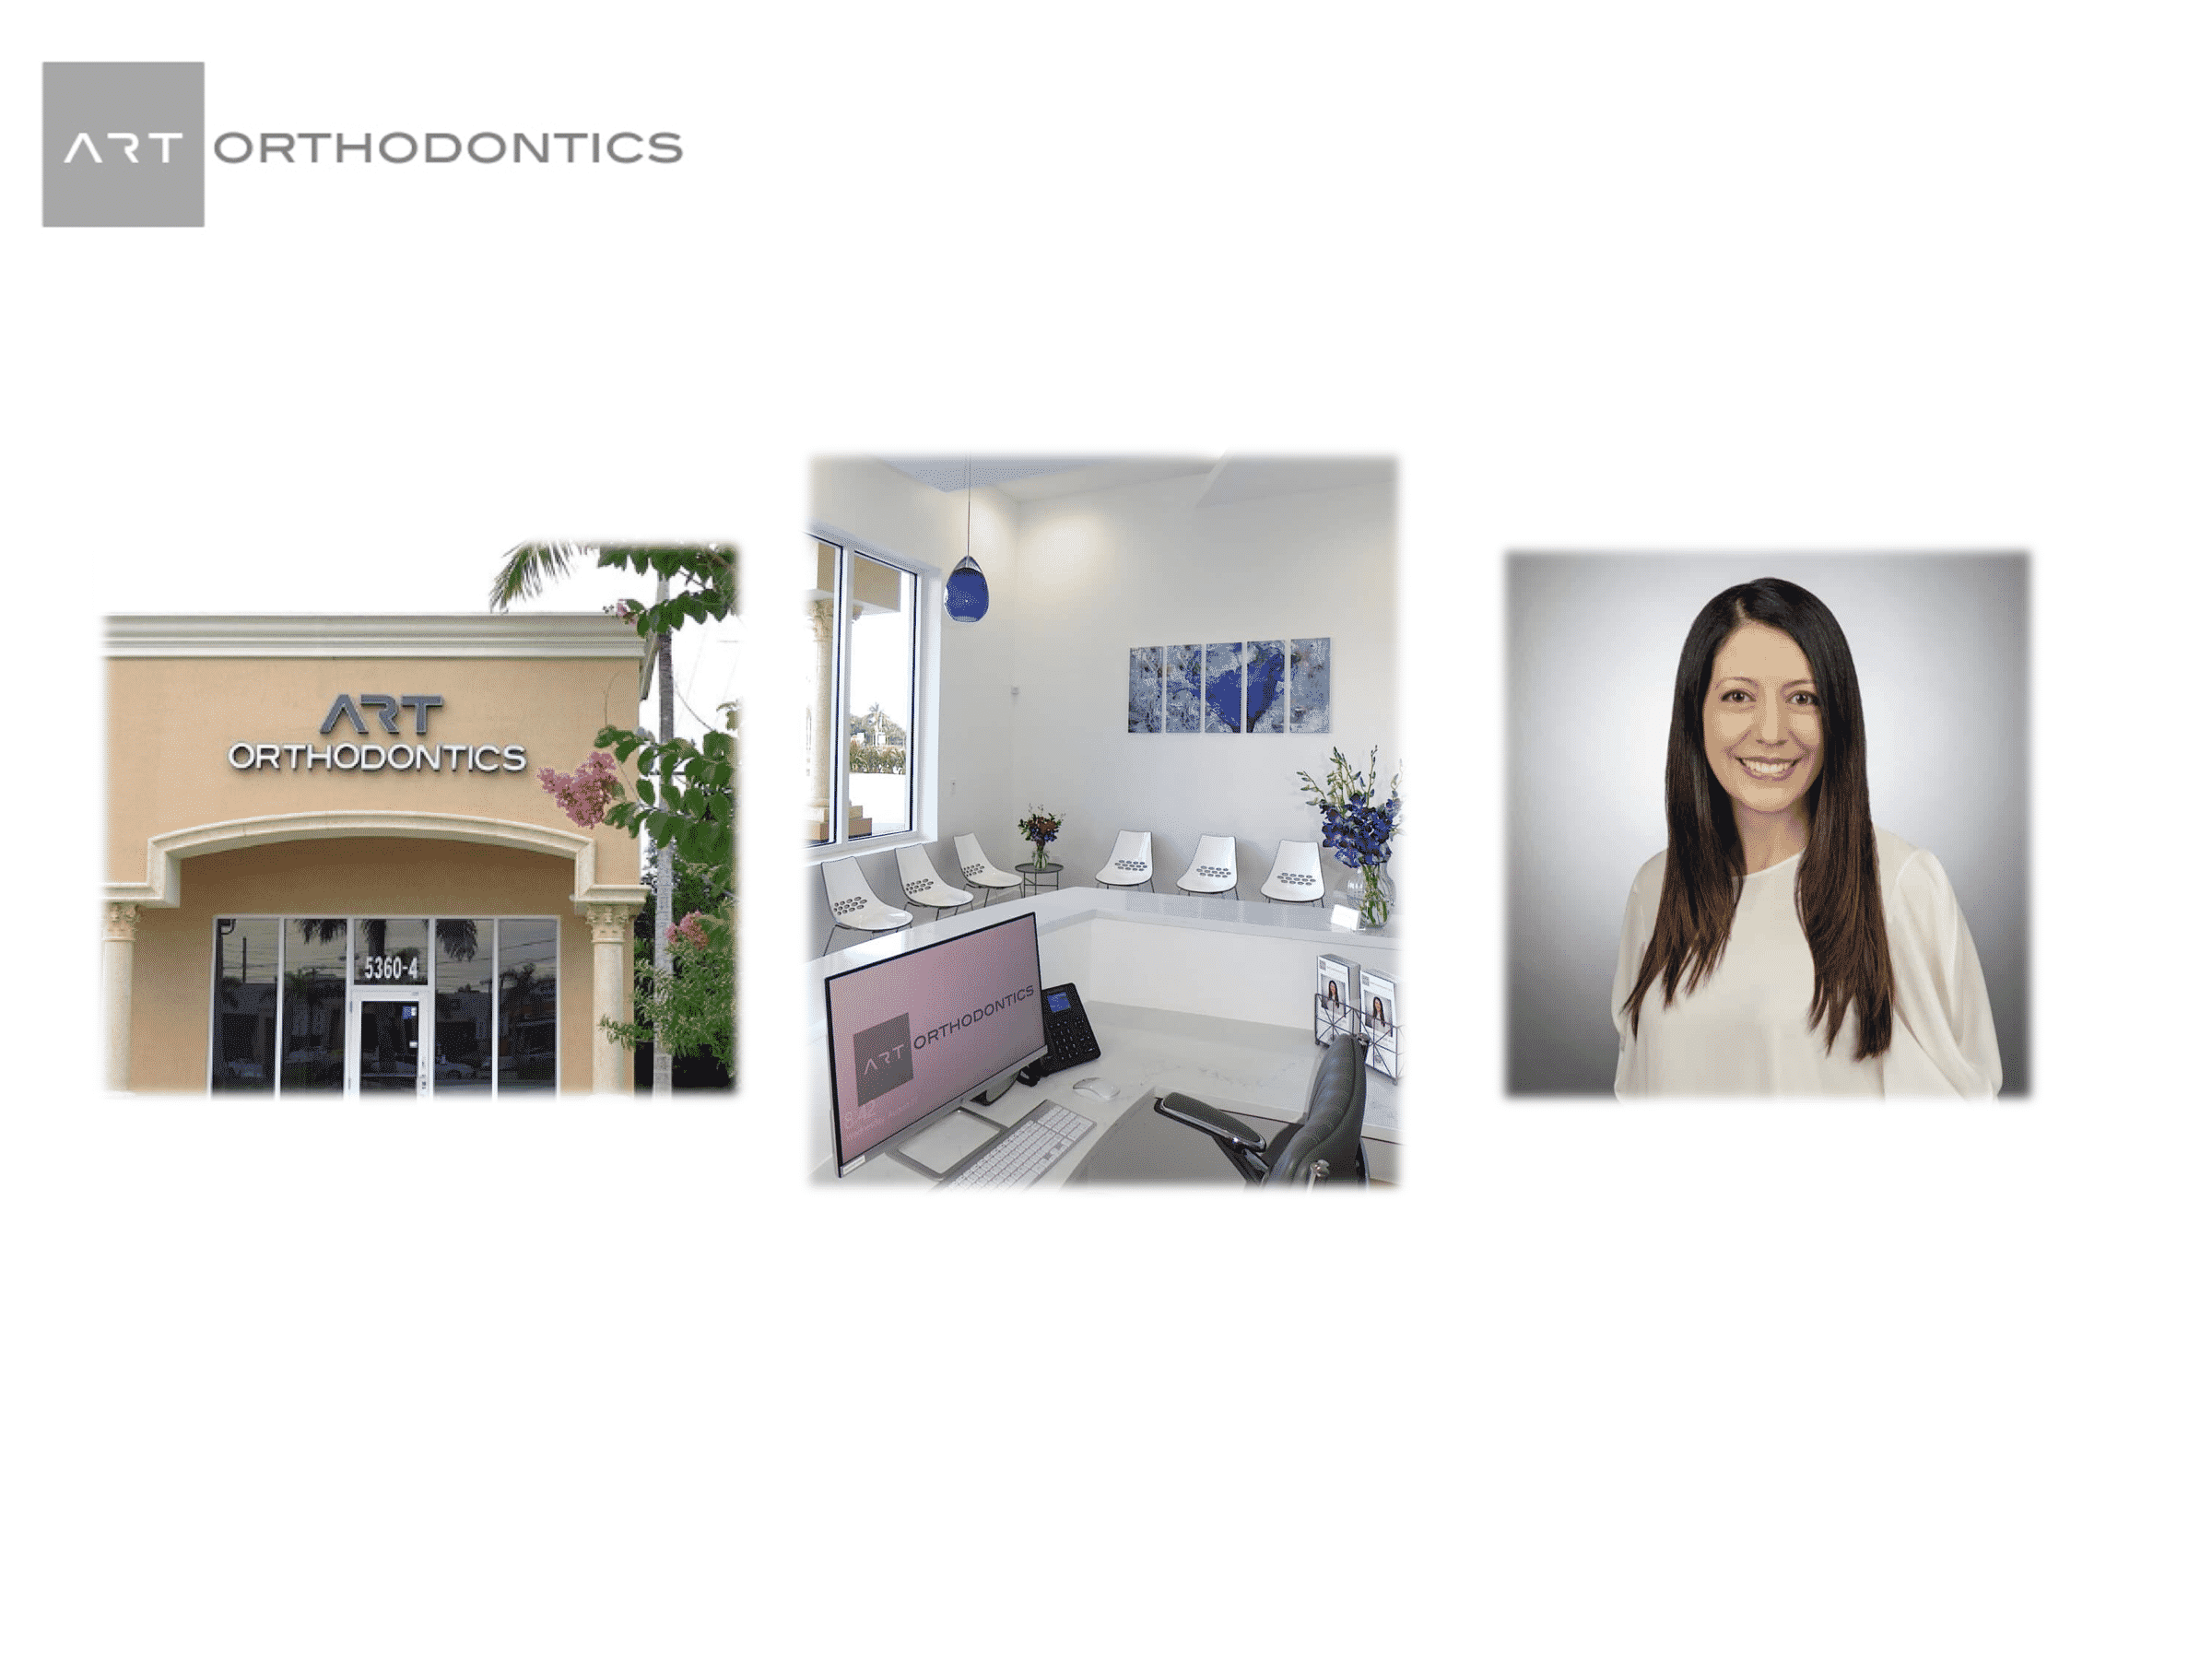 INTRODUCTION TO ORTHODONTICS AND ORTHODONTIC TREATMENT